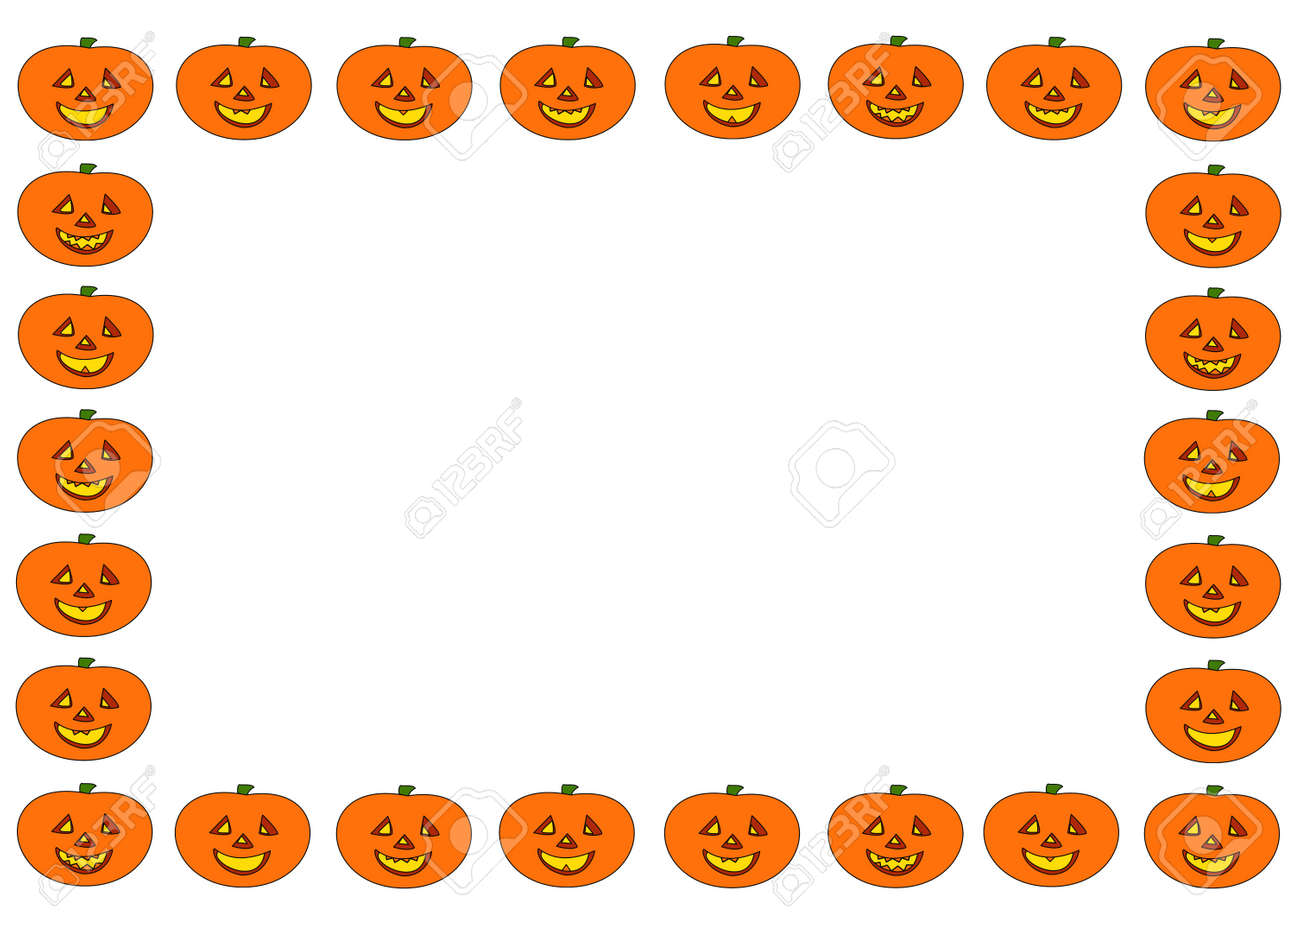 Halloween Happy frame pictures advise dress for summer in 2019